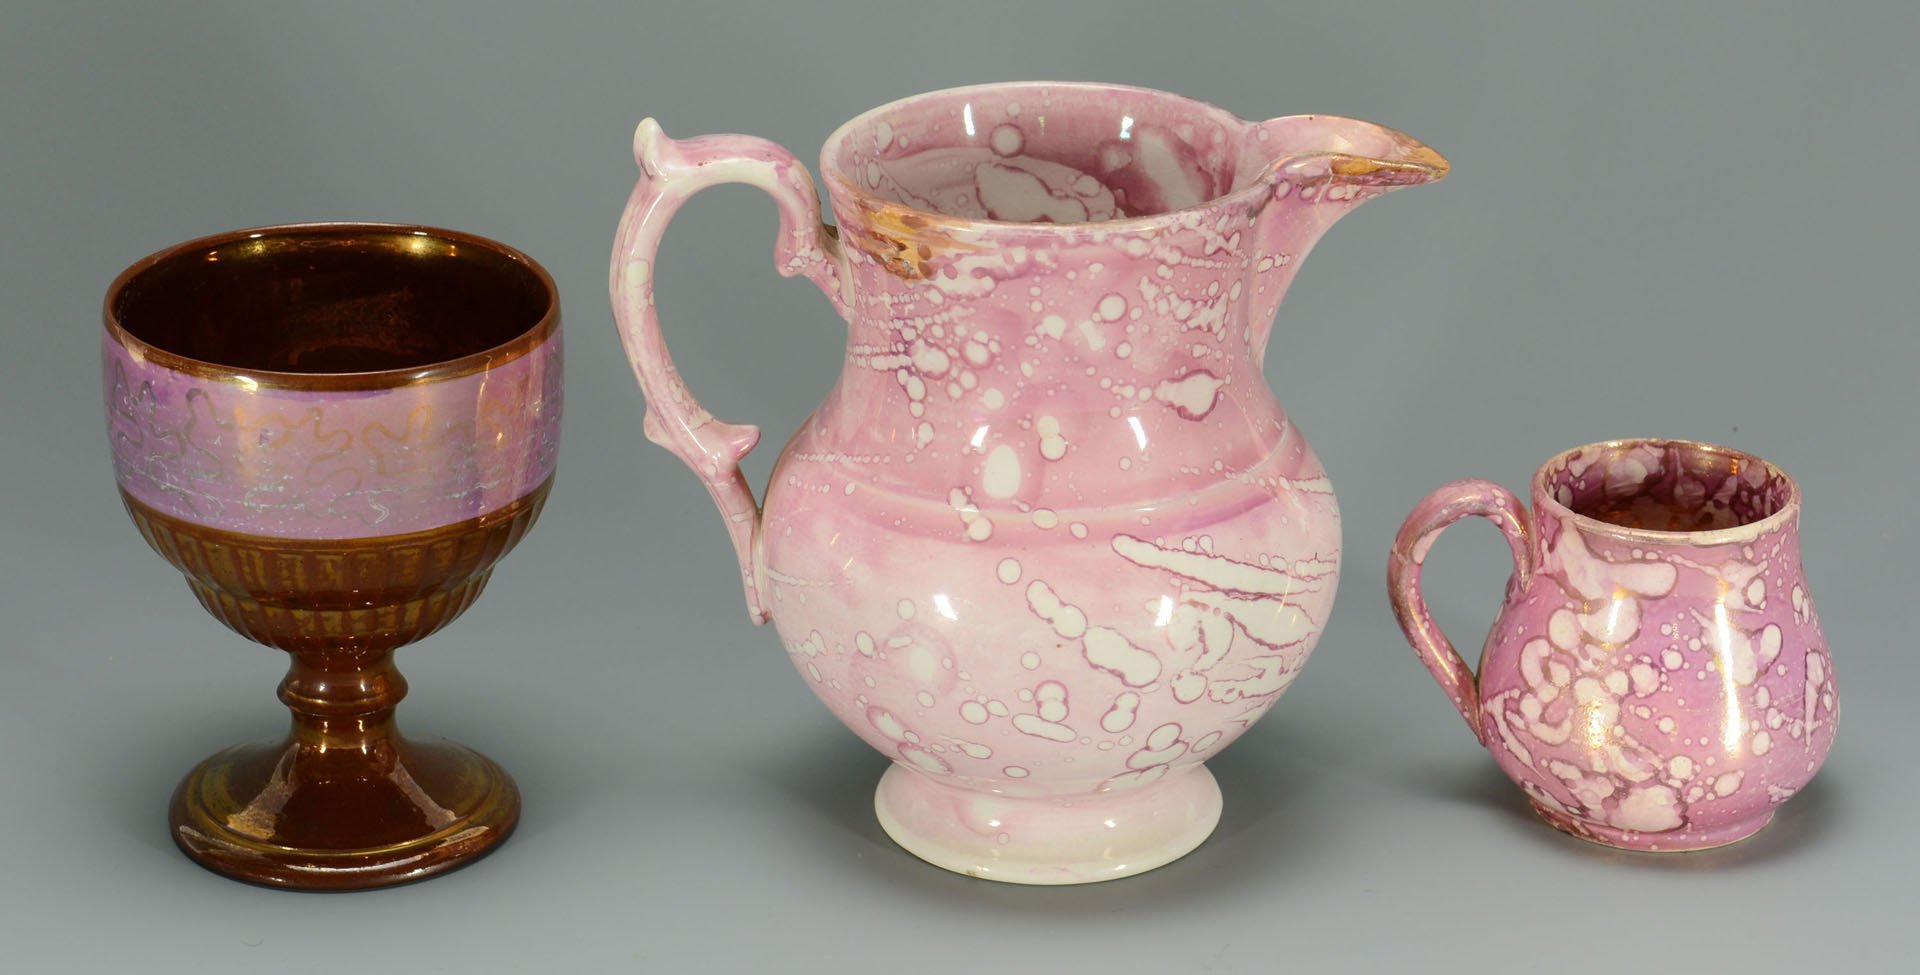 Lot 146: Grouping of Pink Lusterware, total 9 items